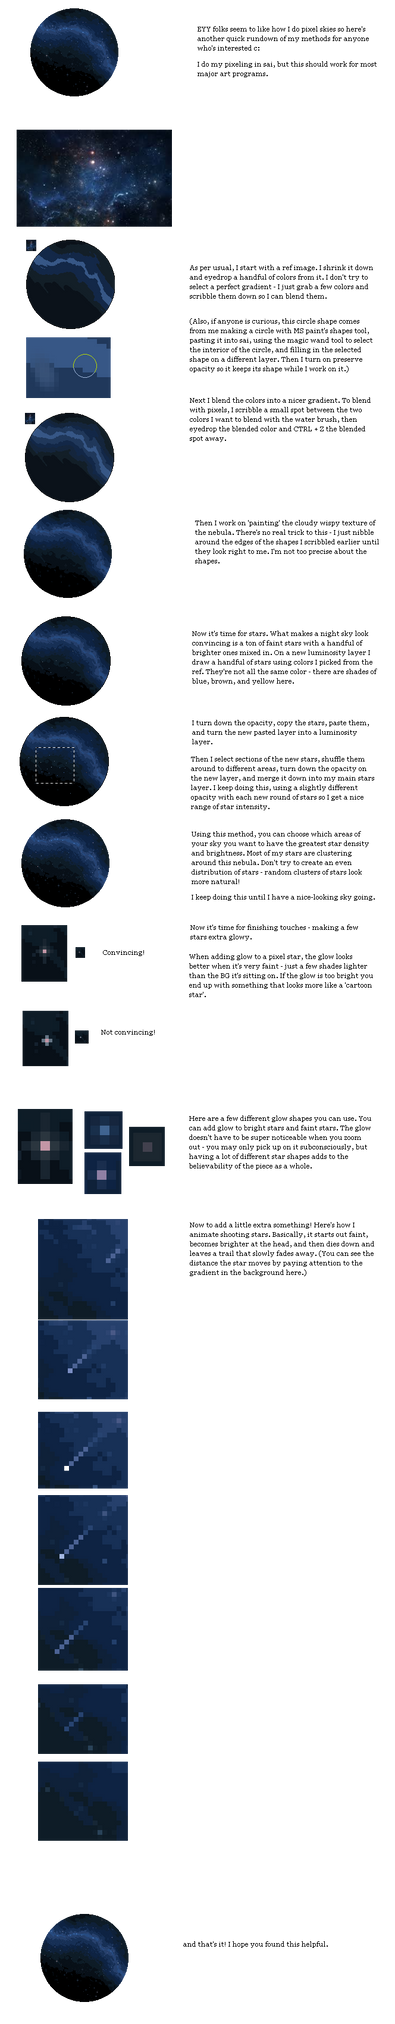 PIXEL + ANIMATION TUTORIAL: night sky by DidTheSqd